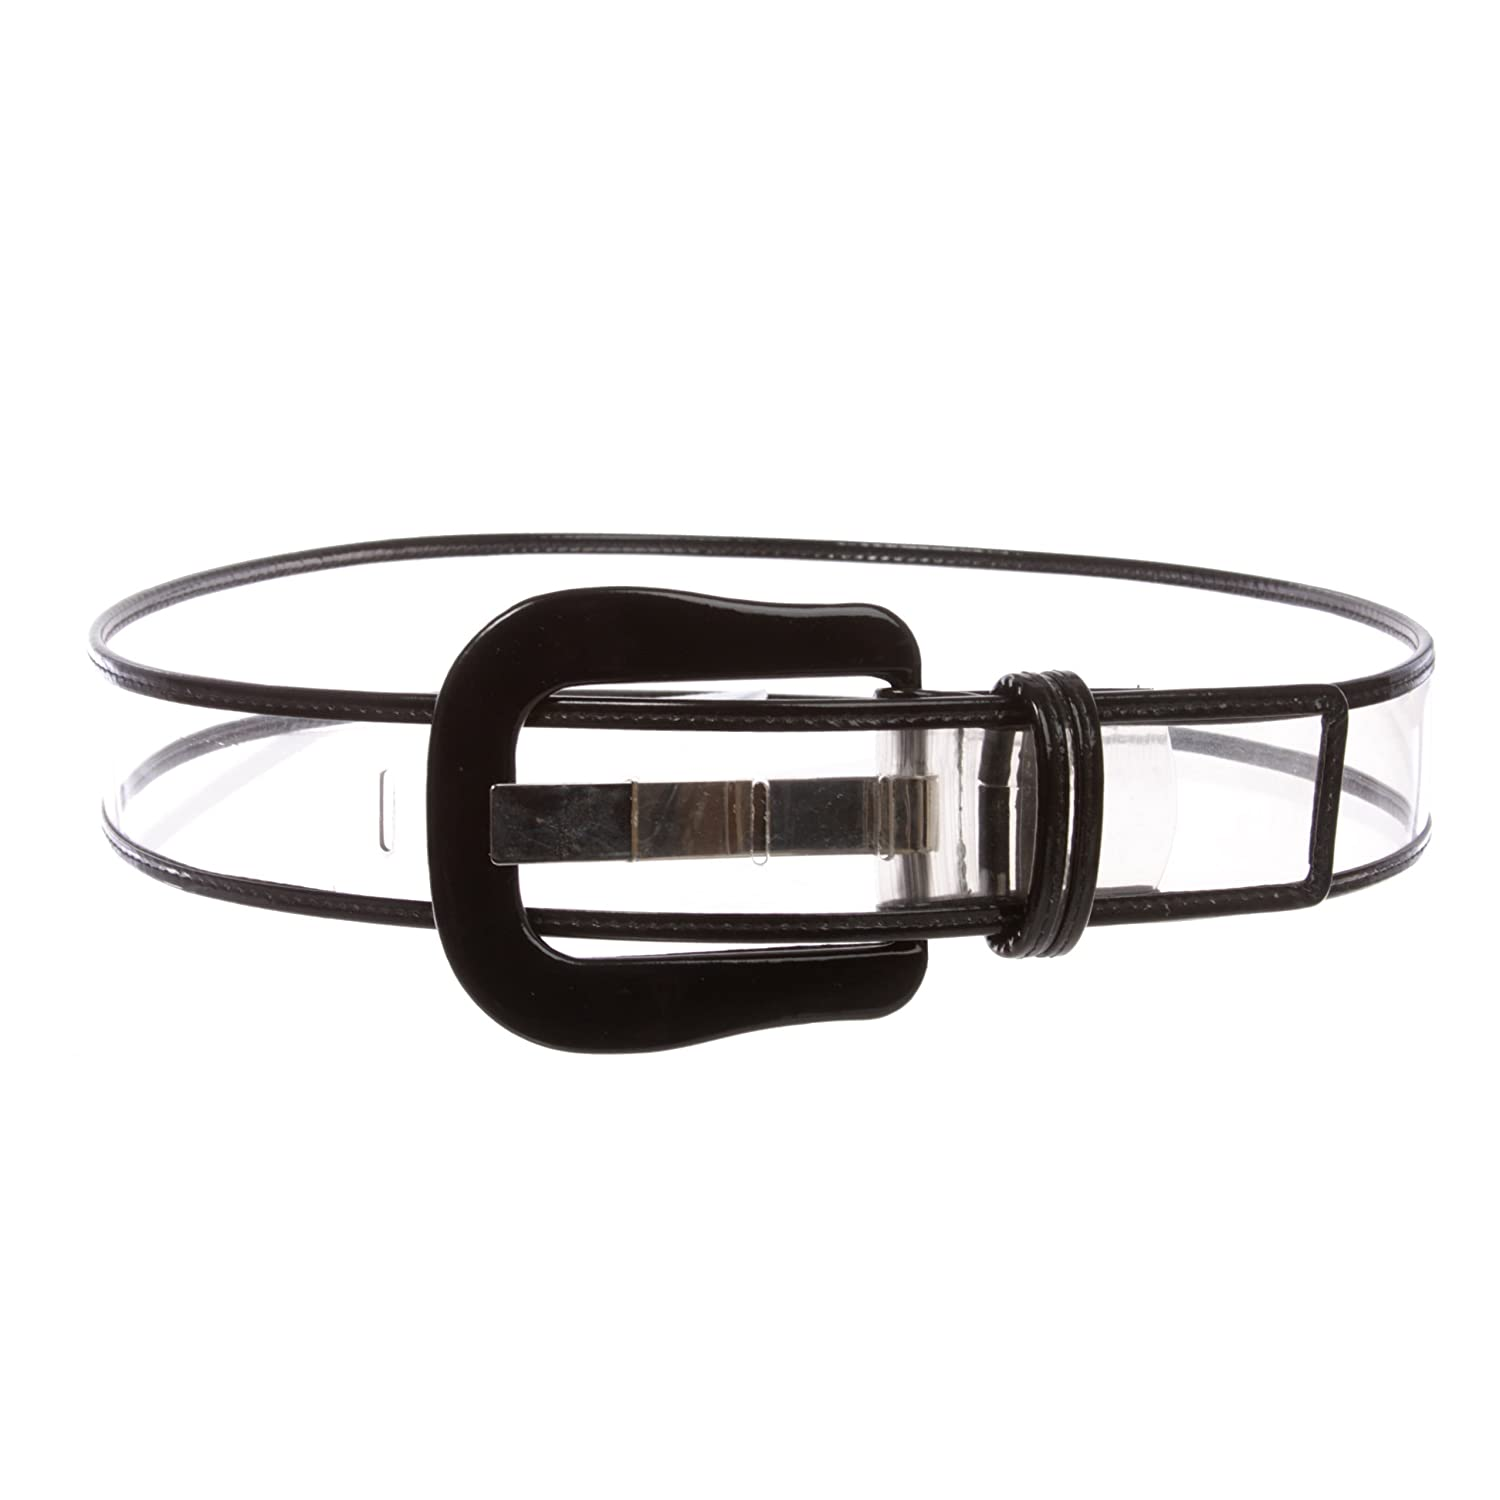 Black Women's Fancy Buckle colorTrimmed Patent Leather Wide Fashion Jelly Clear Belt, White   XS S  28